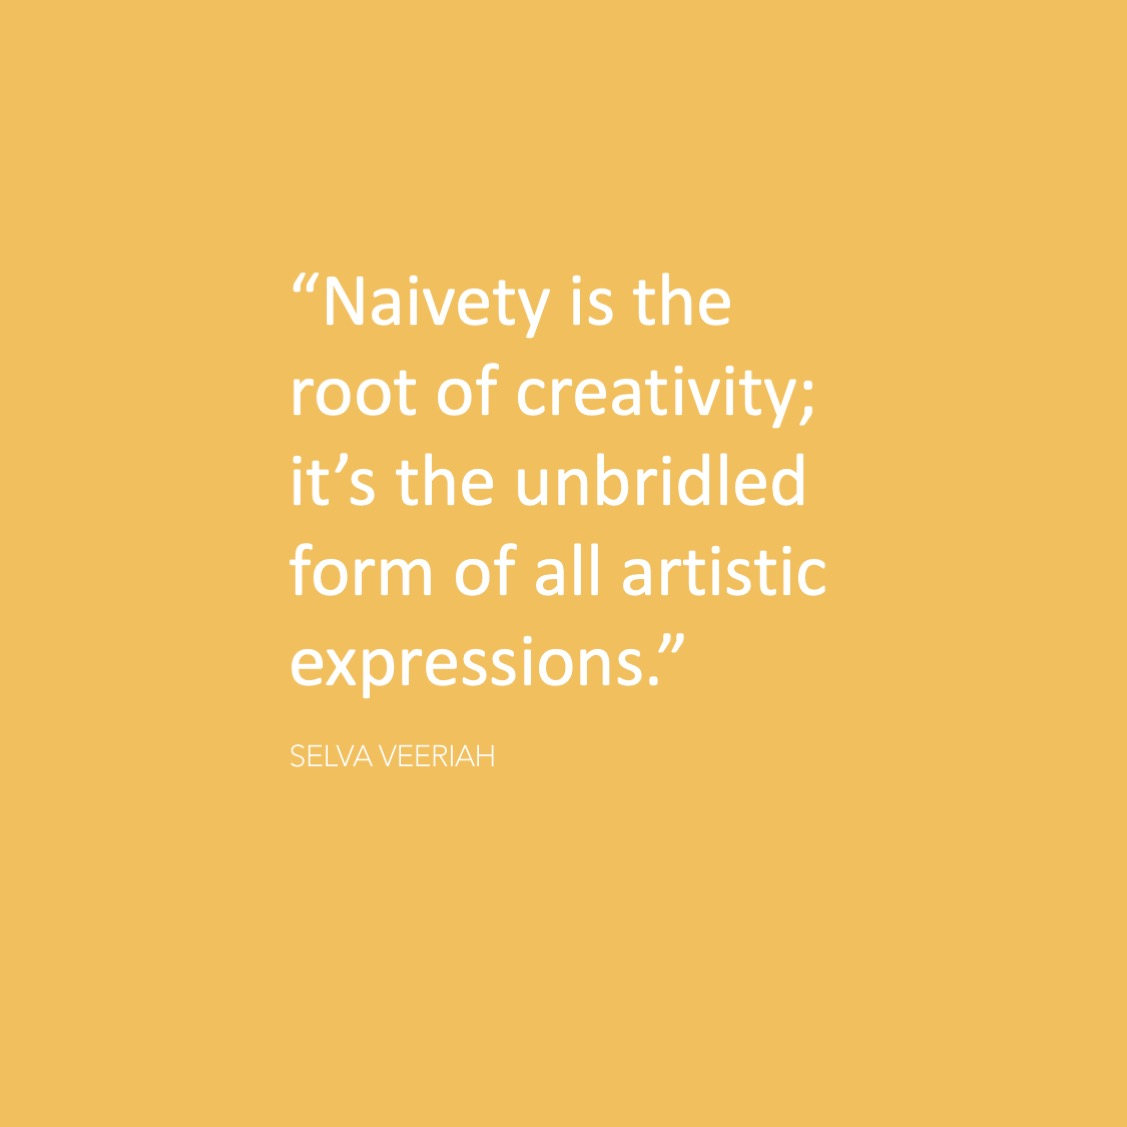 Artist Selva Veeriah's quote regarding naivety and artistic expressions.